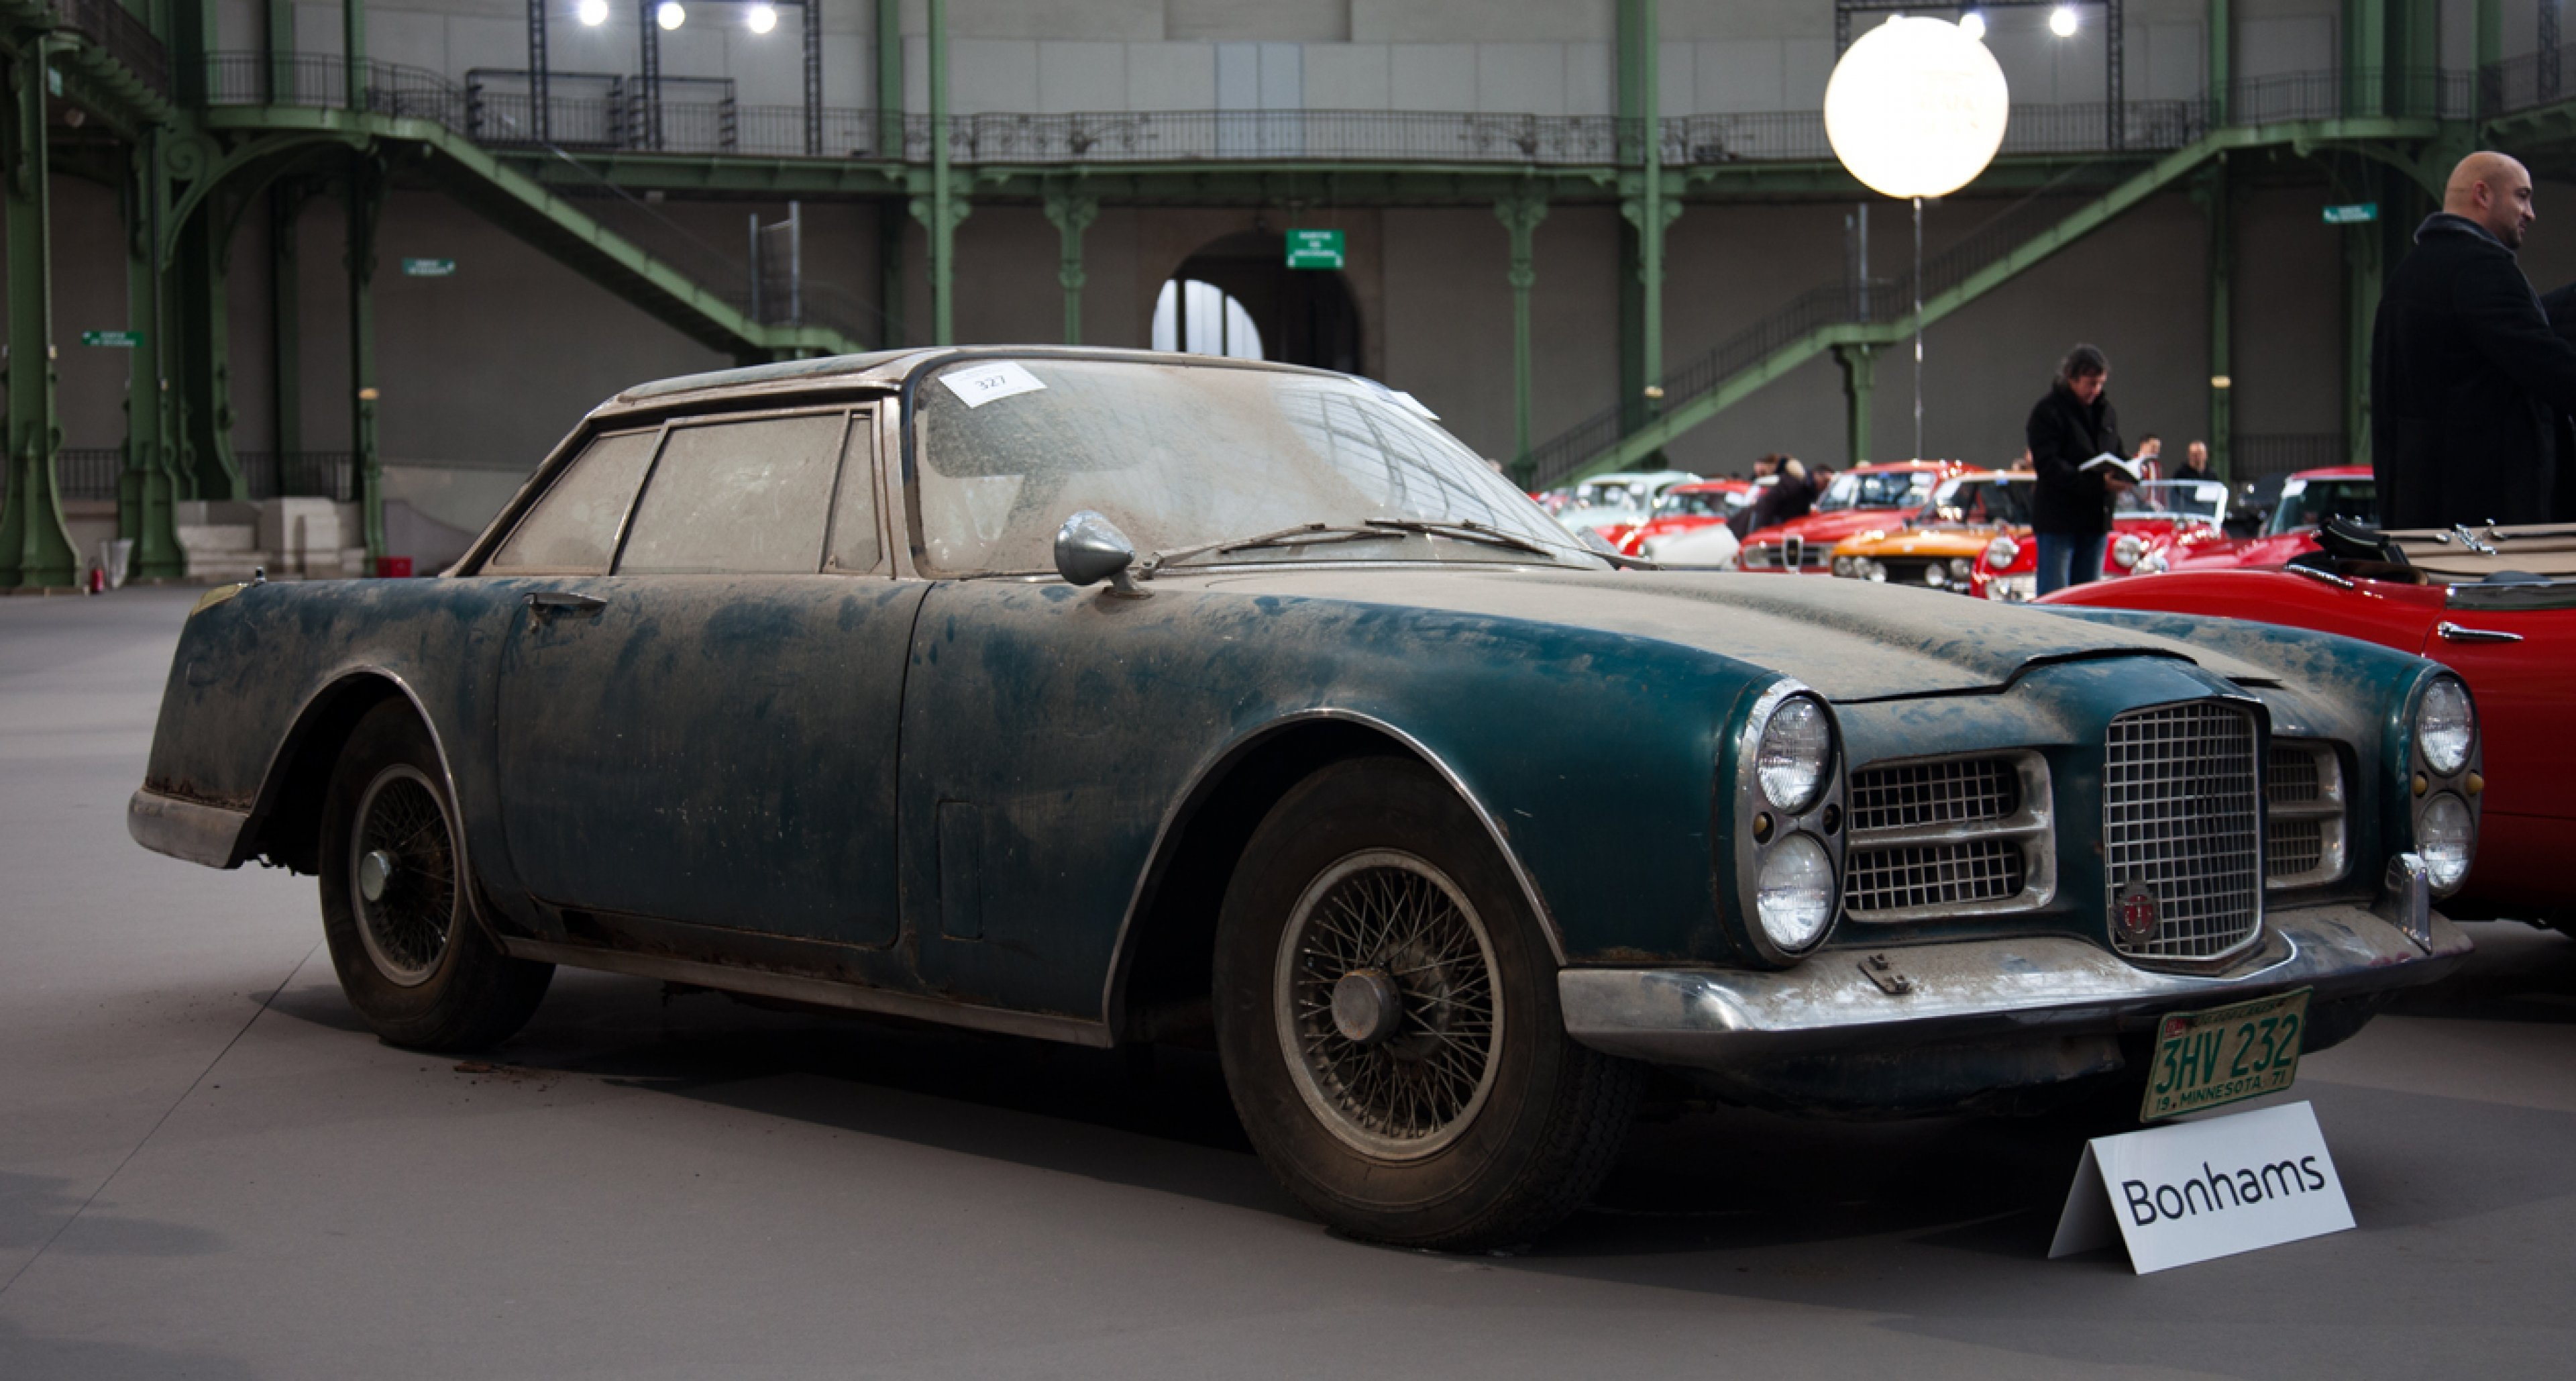 In need of TLC: 1962 Facel Vega Facel II Coupe (sold for €155,250) at Bonhams.